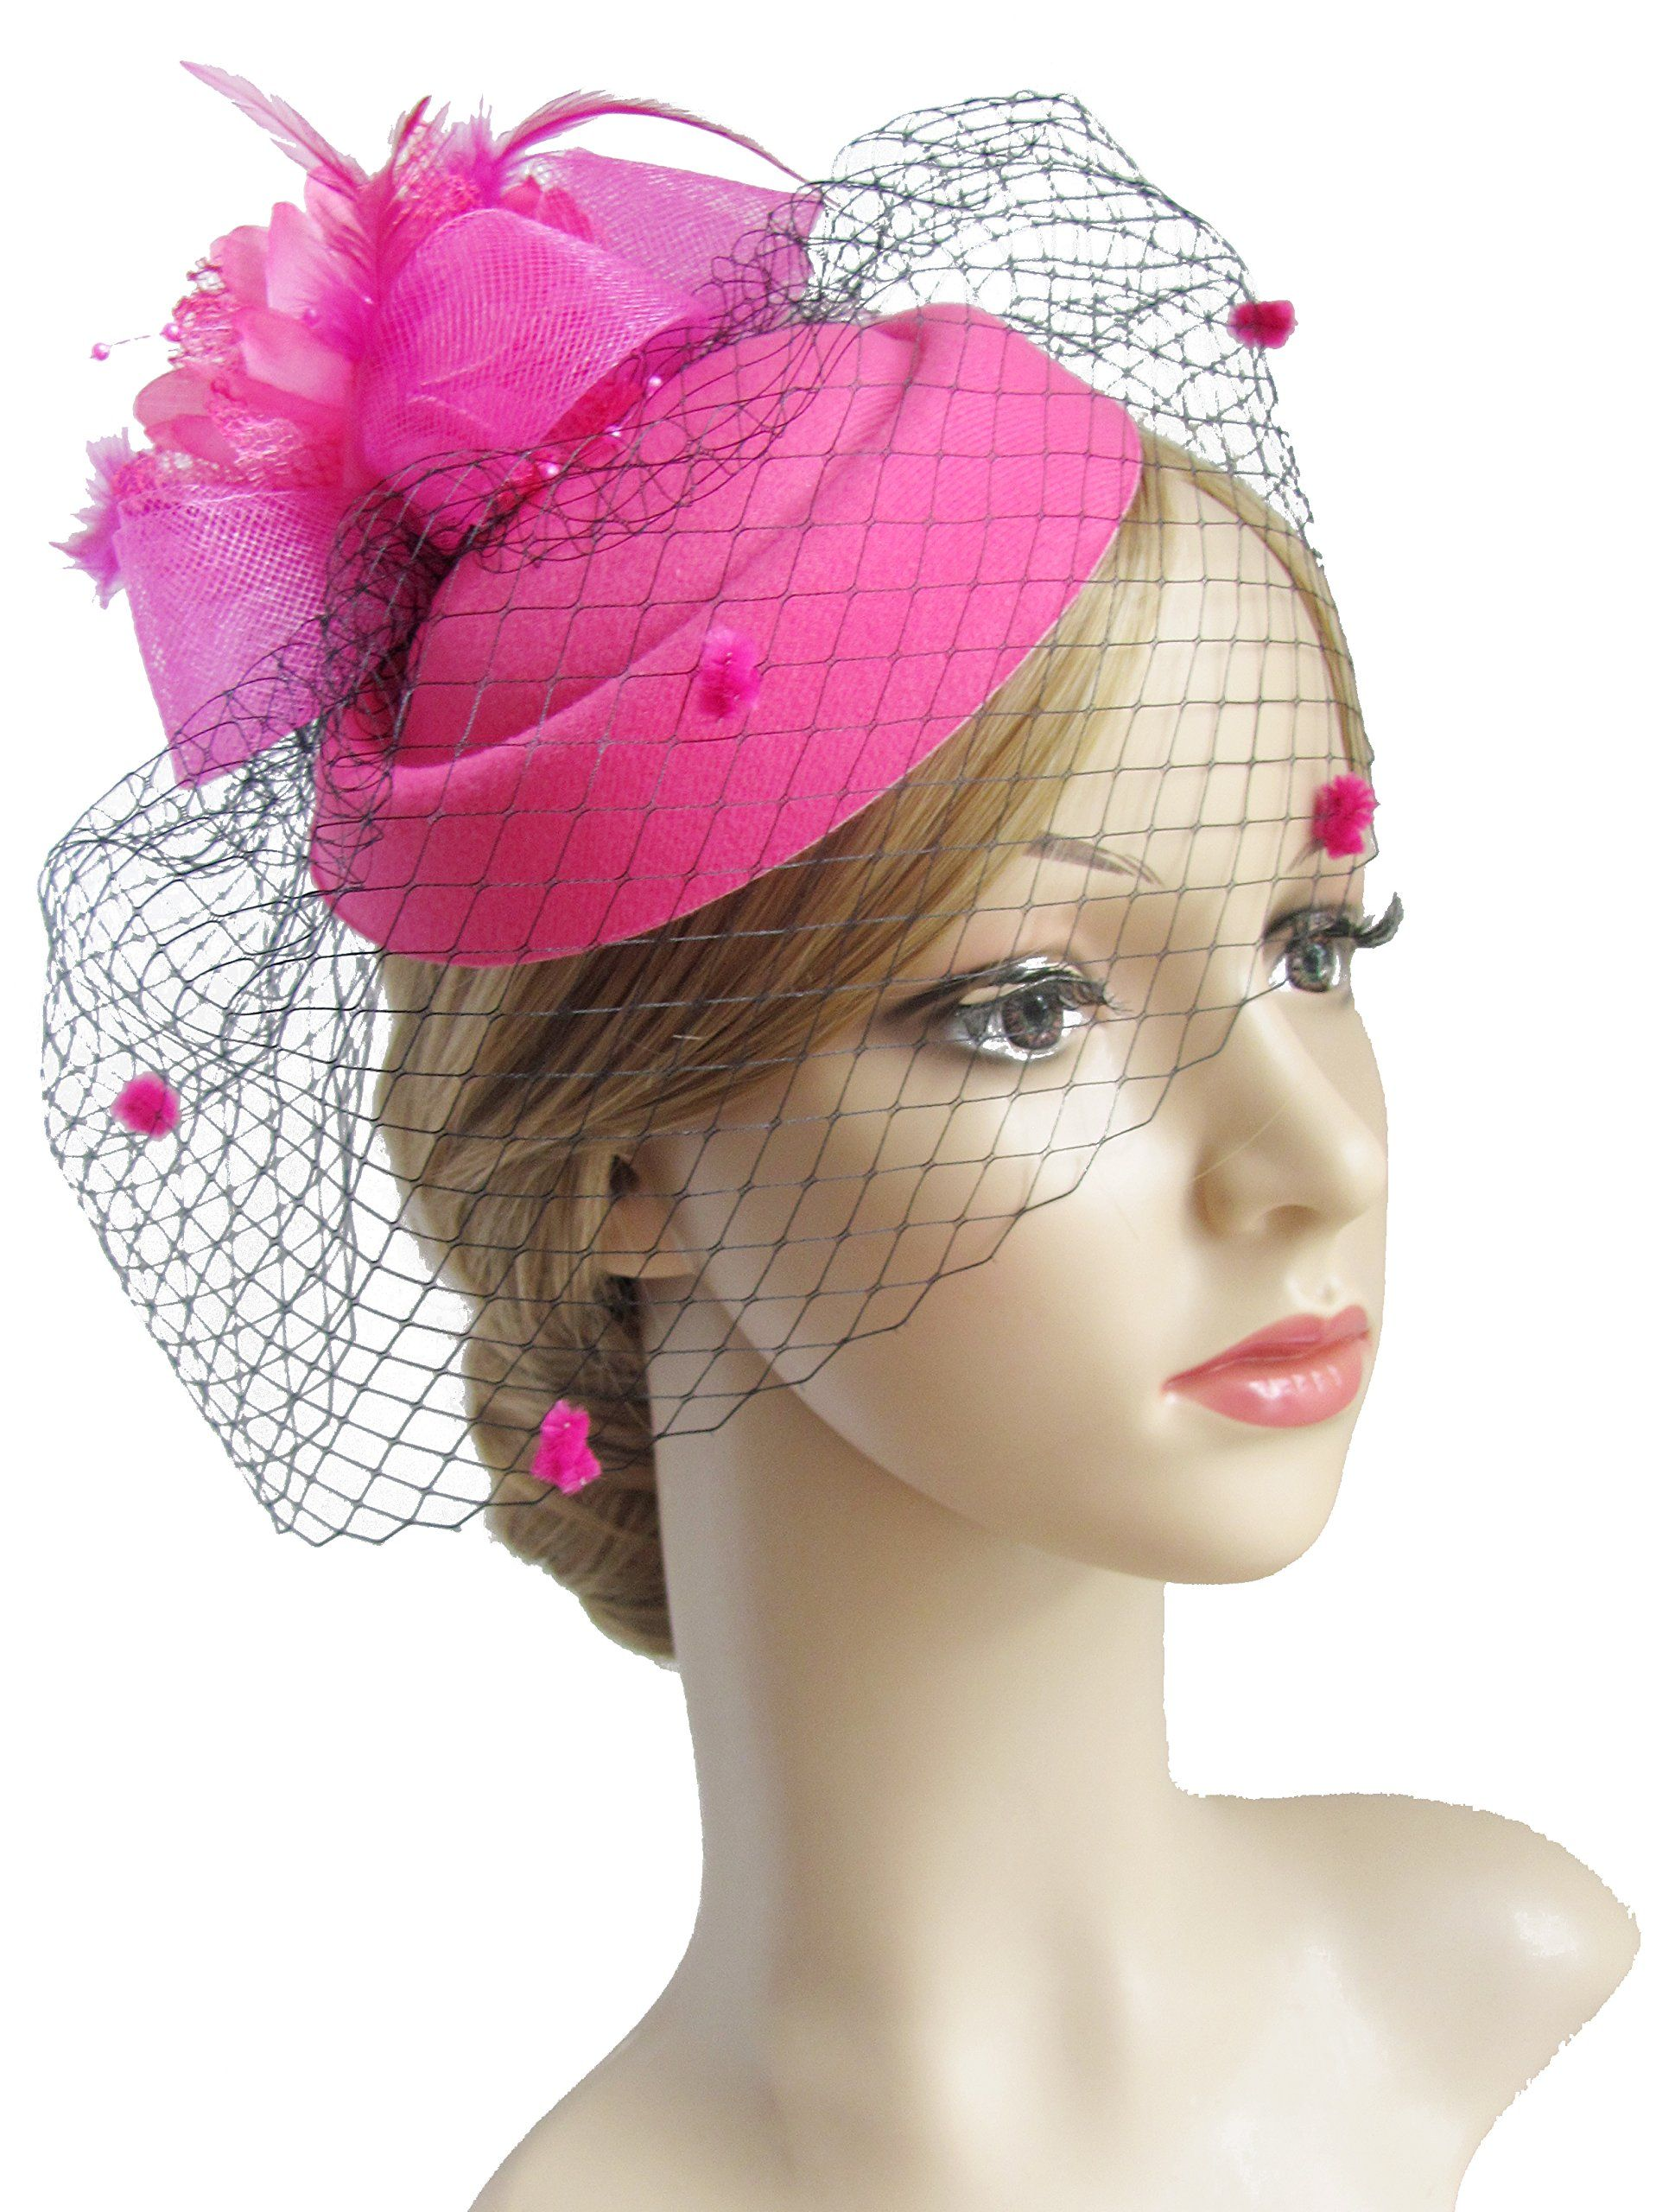 K.CLASSIC Fascinator Hair Clip Pillbox Hat Bowler Feather Flower Veil  Wedding Party Hat Tea Hat Rose     Want additional info  Click on the image. f8841ac6db61